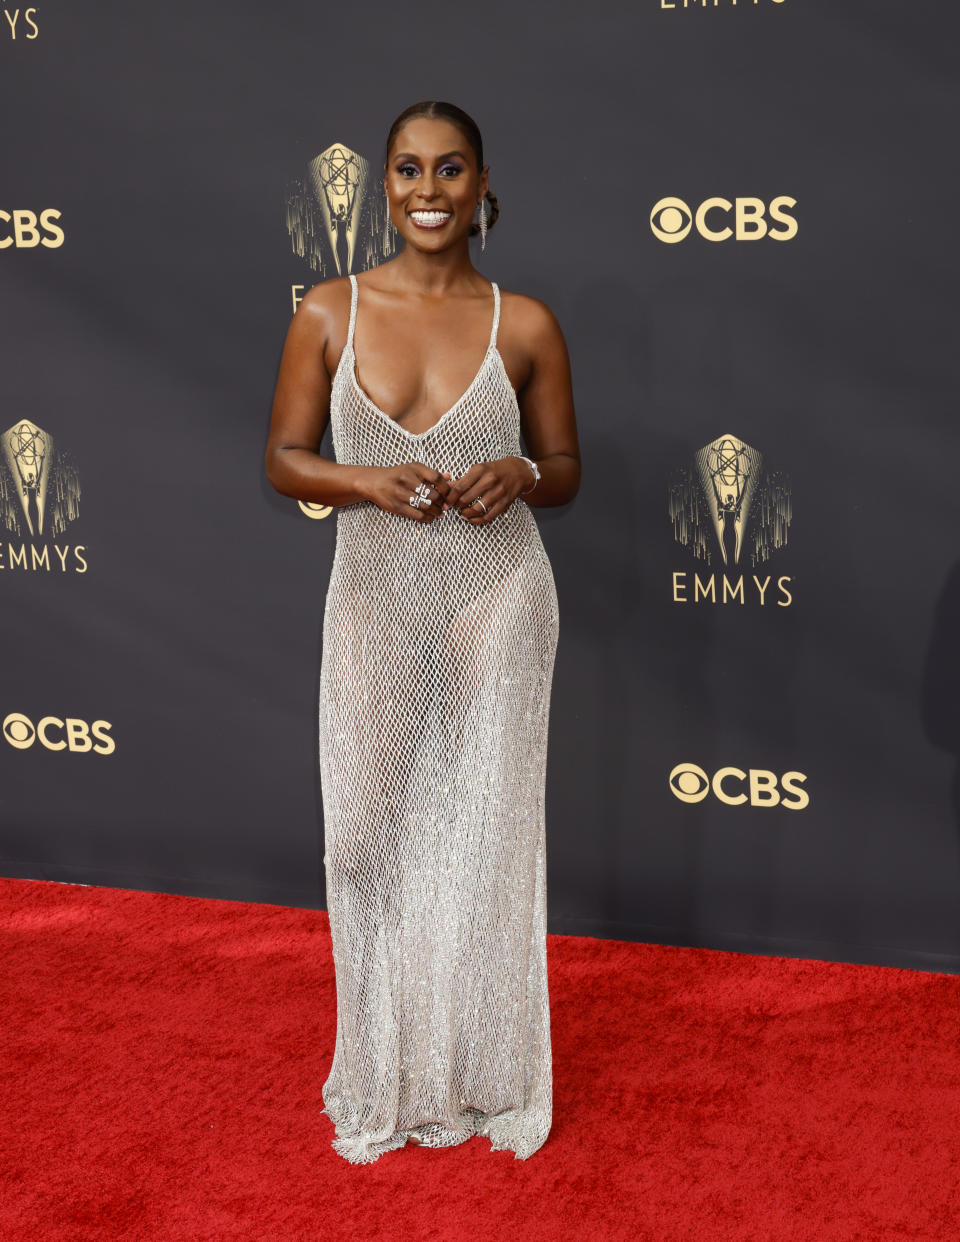 Issa Rae wears a silver mesh dress at the 73RD EMMY AWARDS on Sunday, Sept. 19